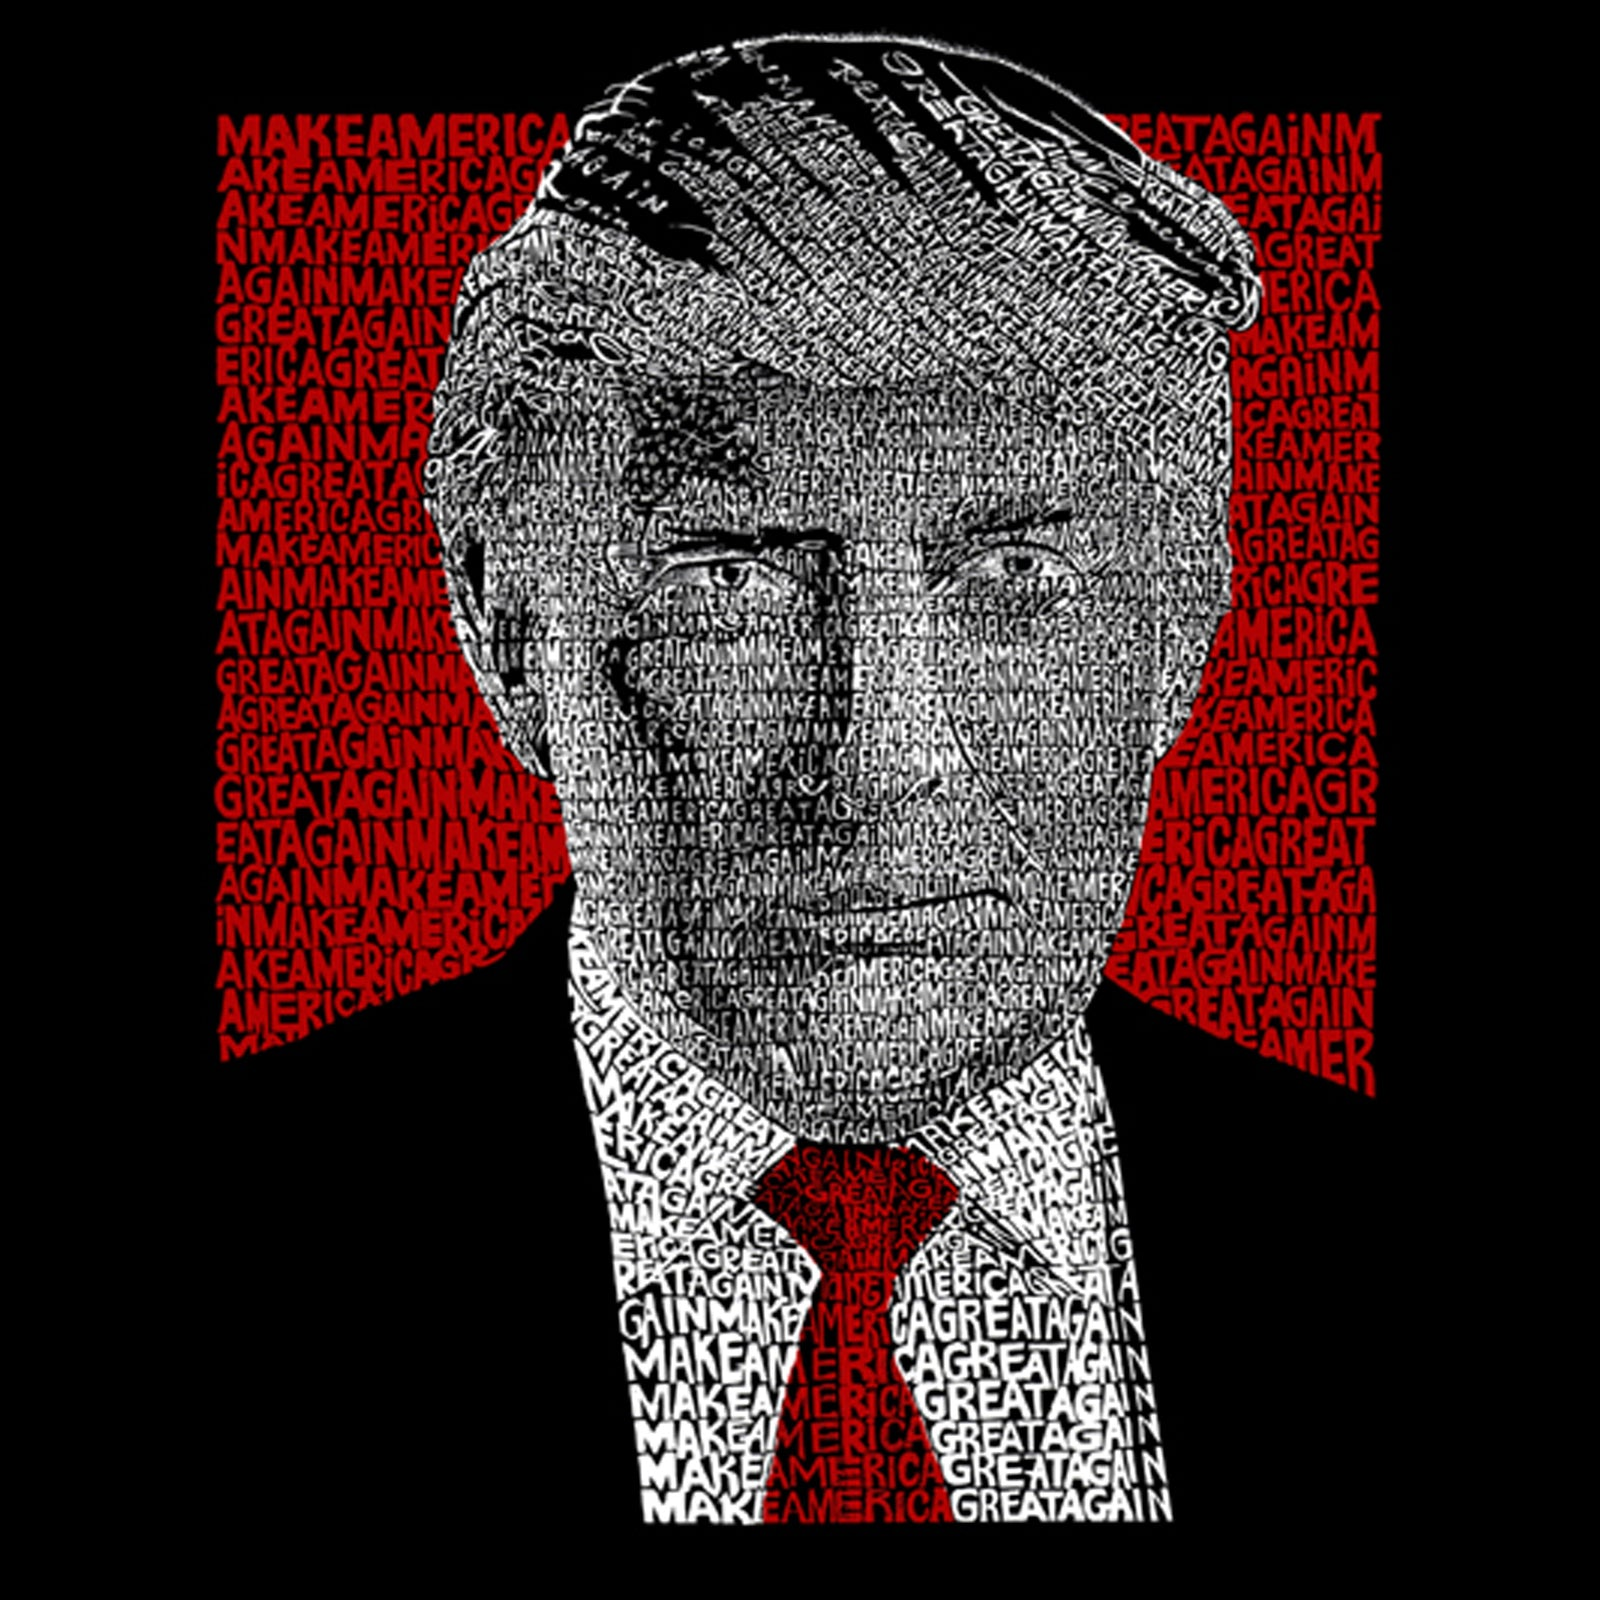 Men's Premium Blend Word Art T-shirt - TRUMP 2016 - Make America Great Again